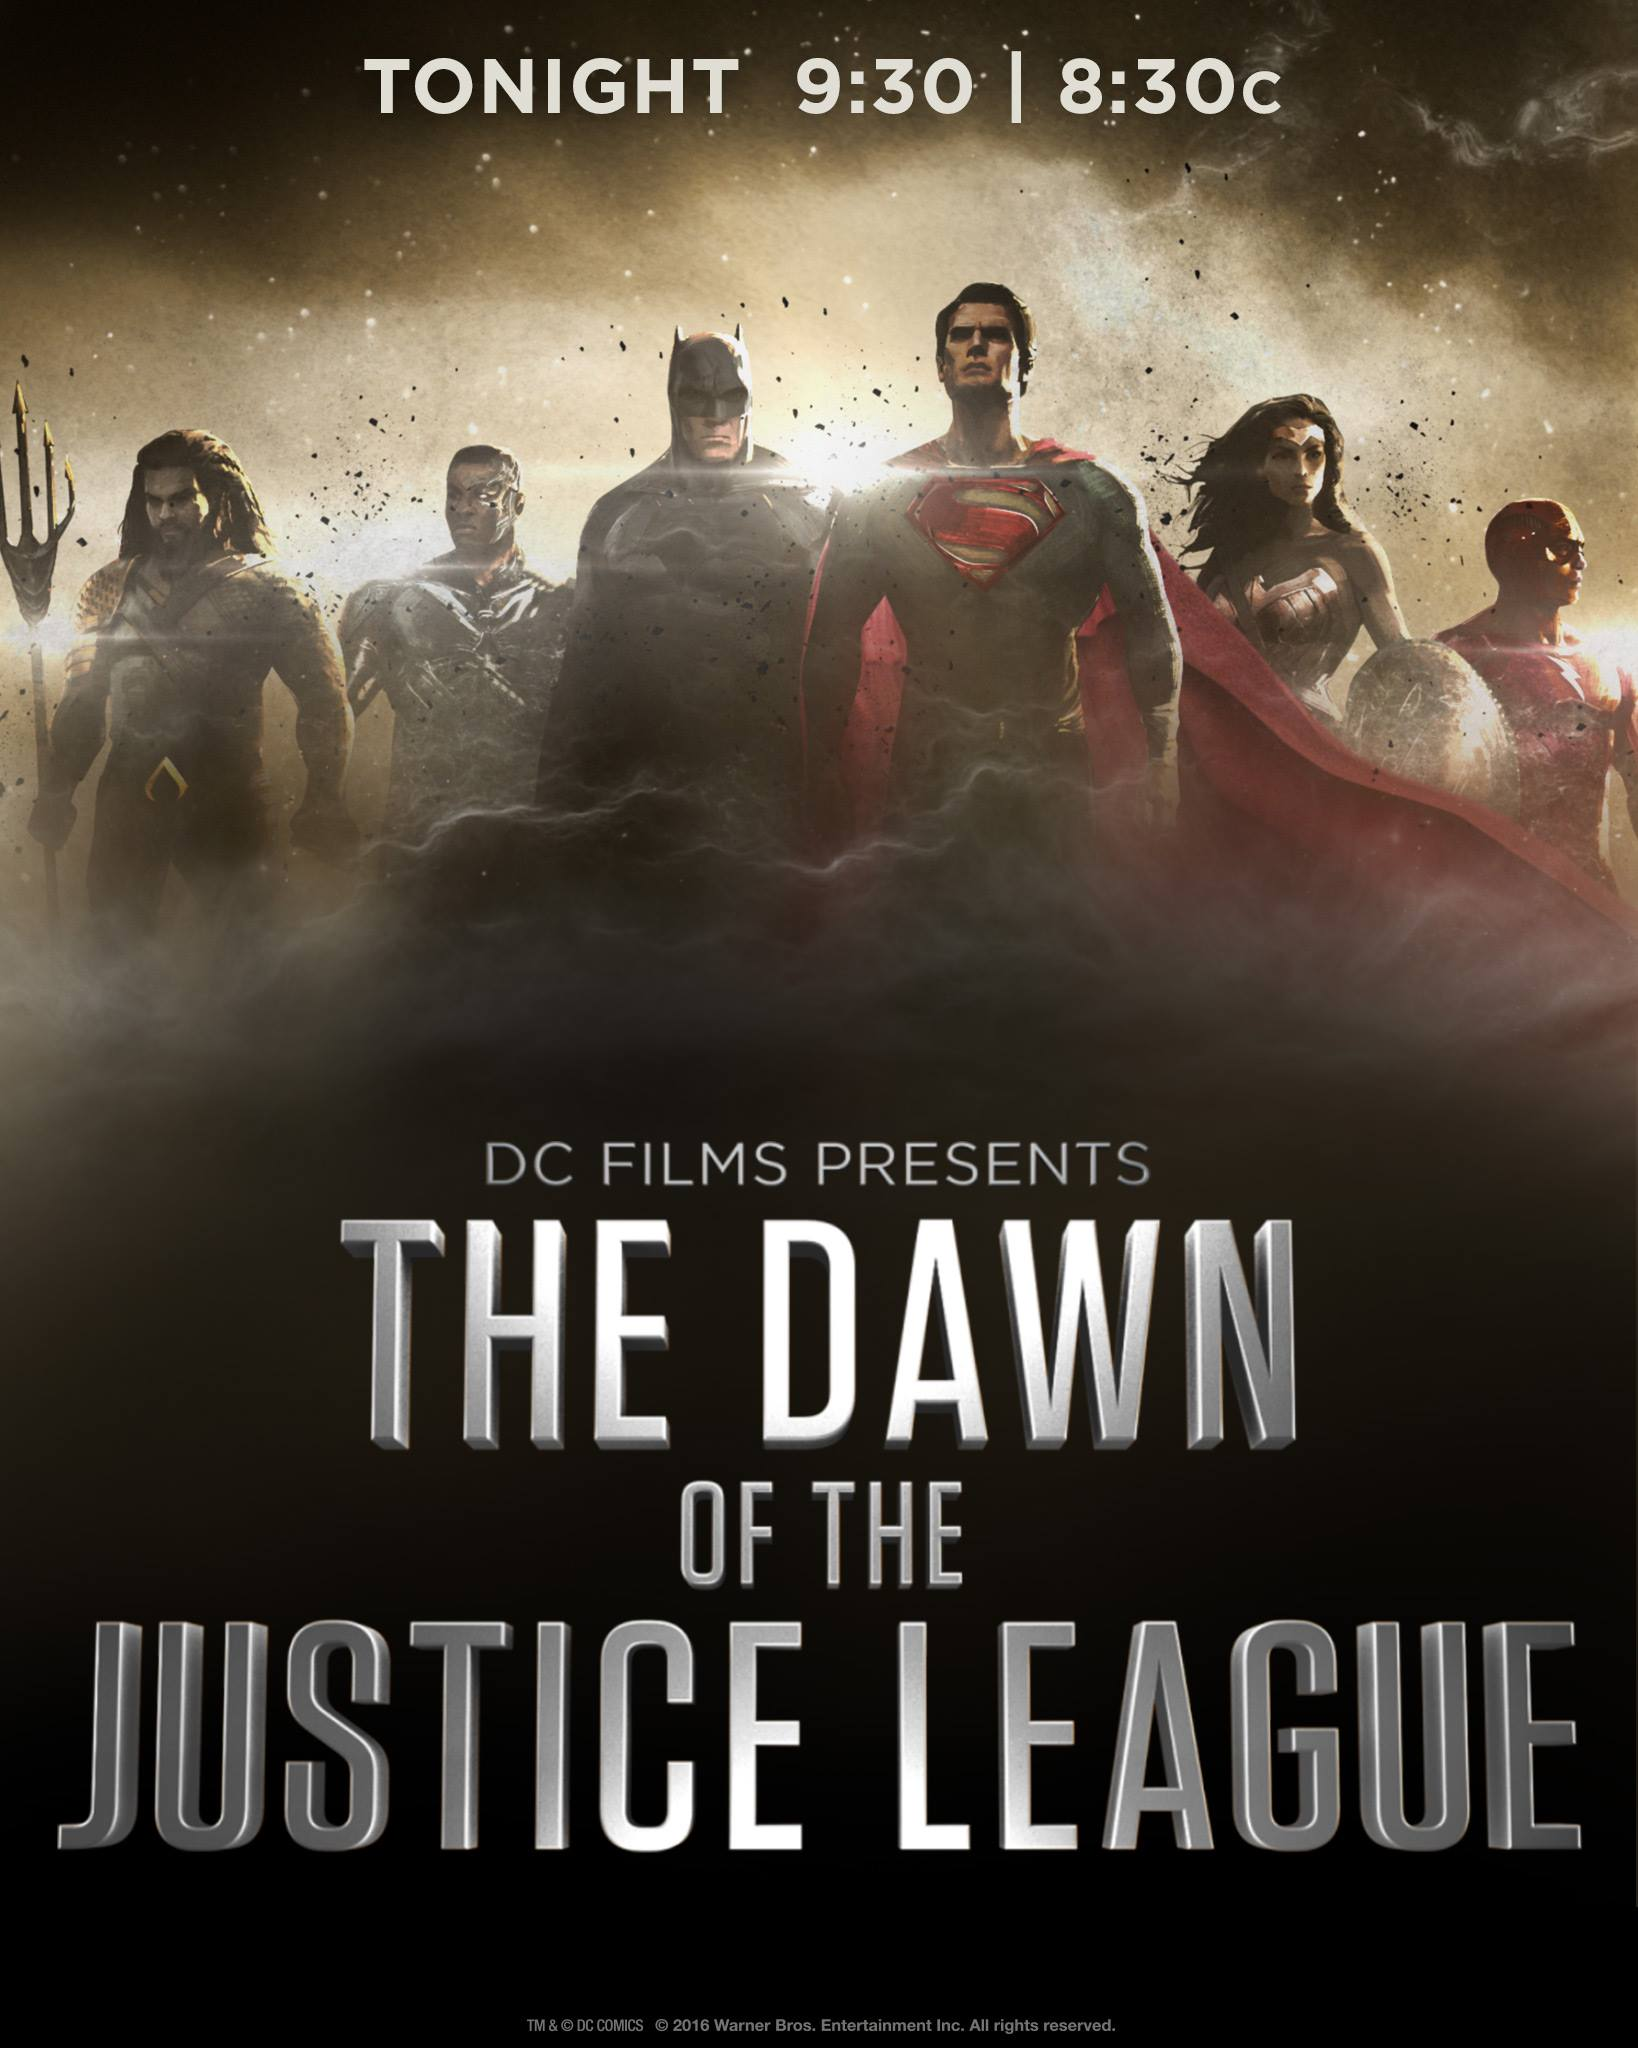 The Justice League Part Movie Teaser Trailer - First teaser trailer dawn of justice